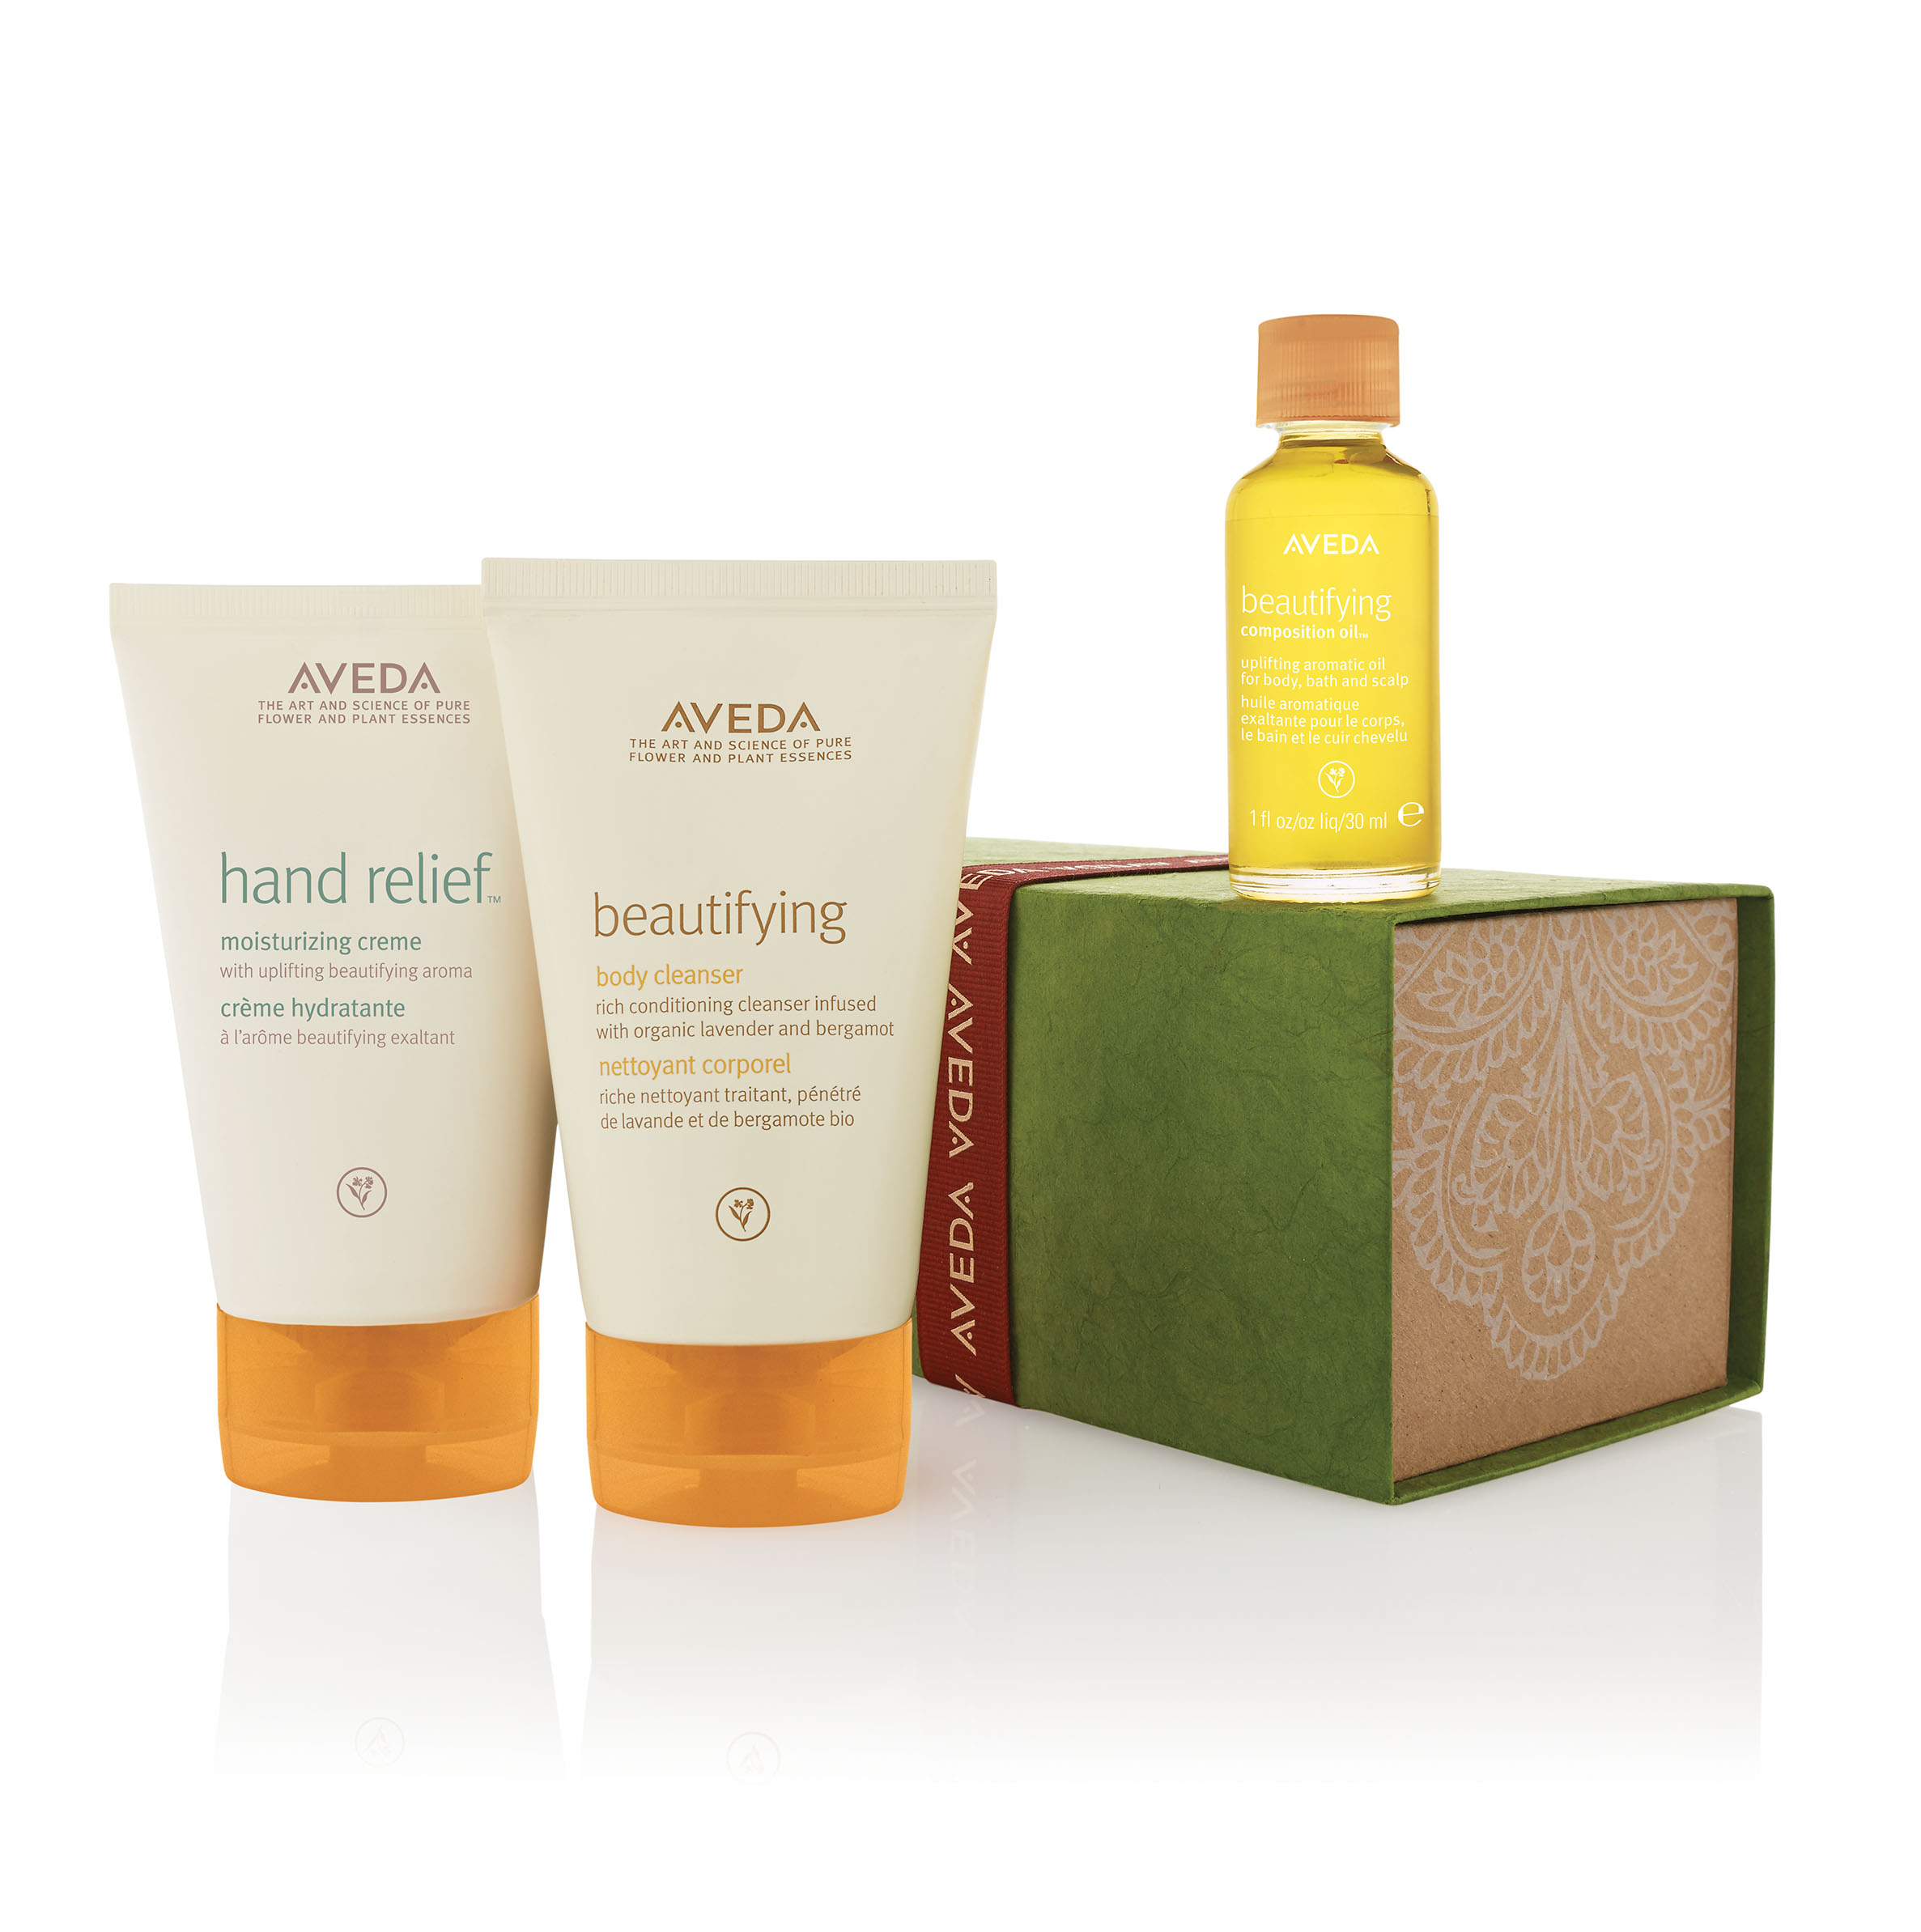 Aveda gifts - A Gift of Uplifting Moments